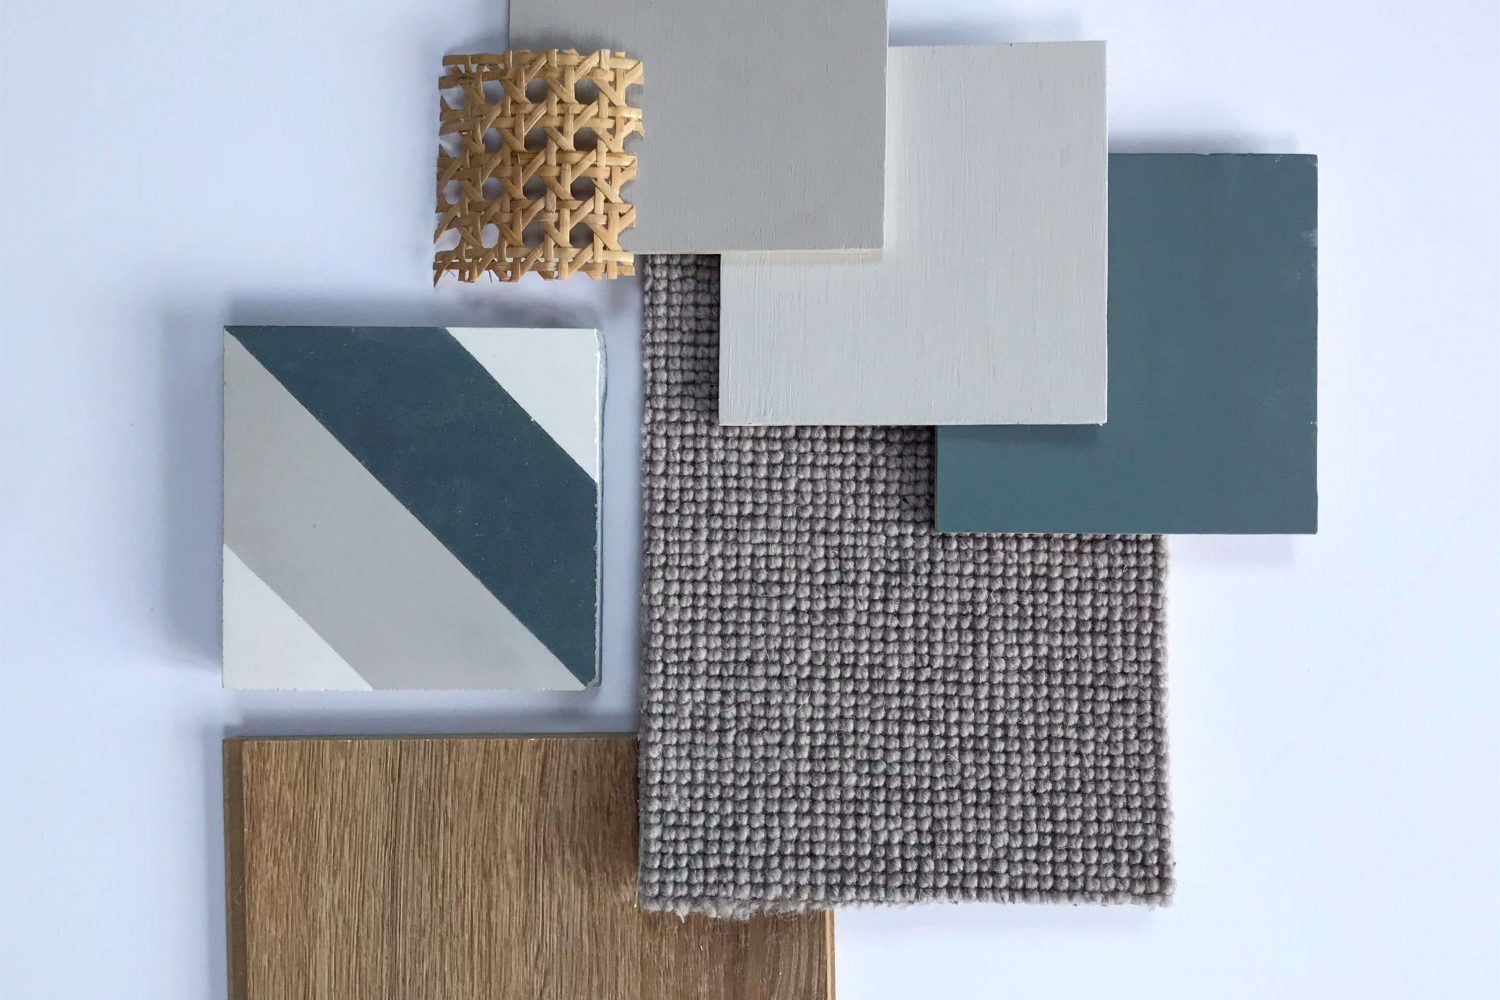 natalie holden interiors, mood board inspiration, cane webbing detail